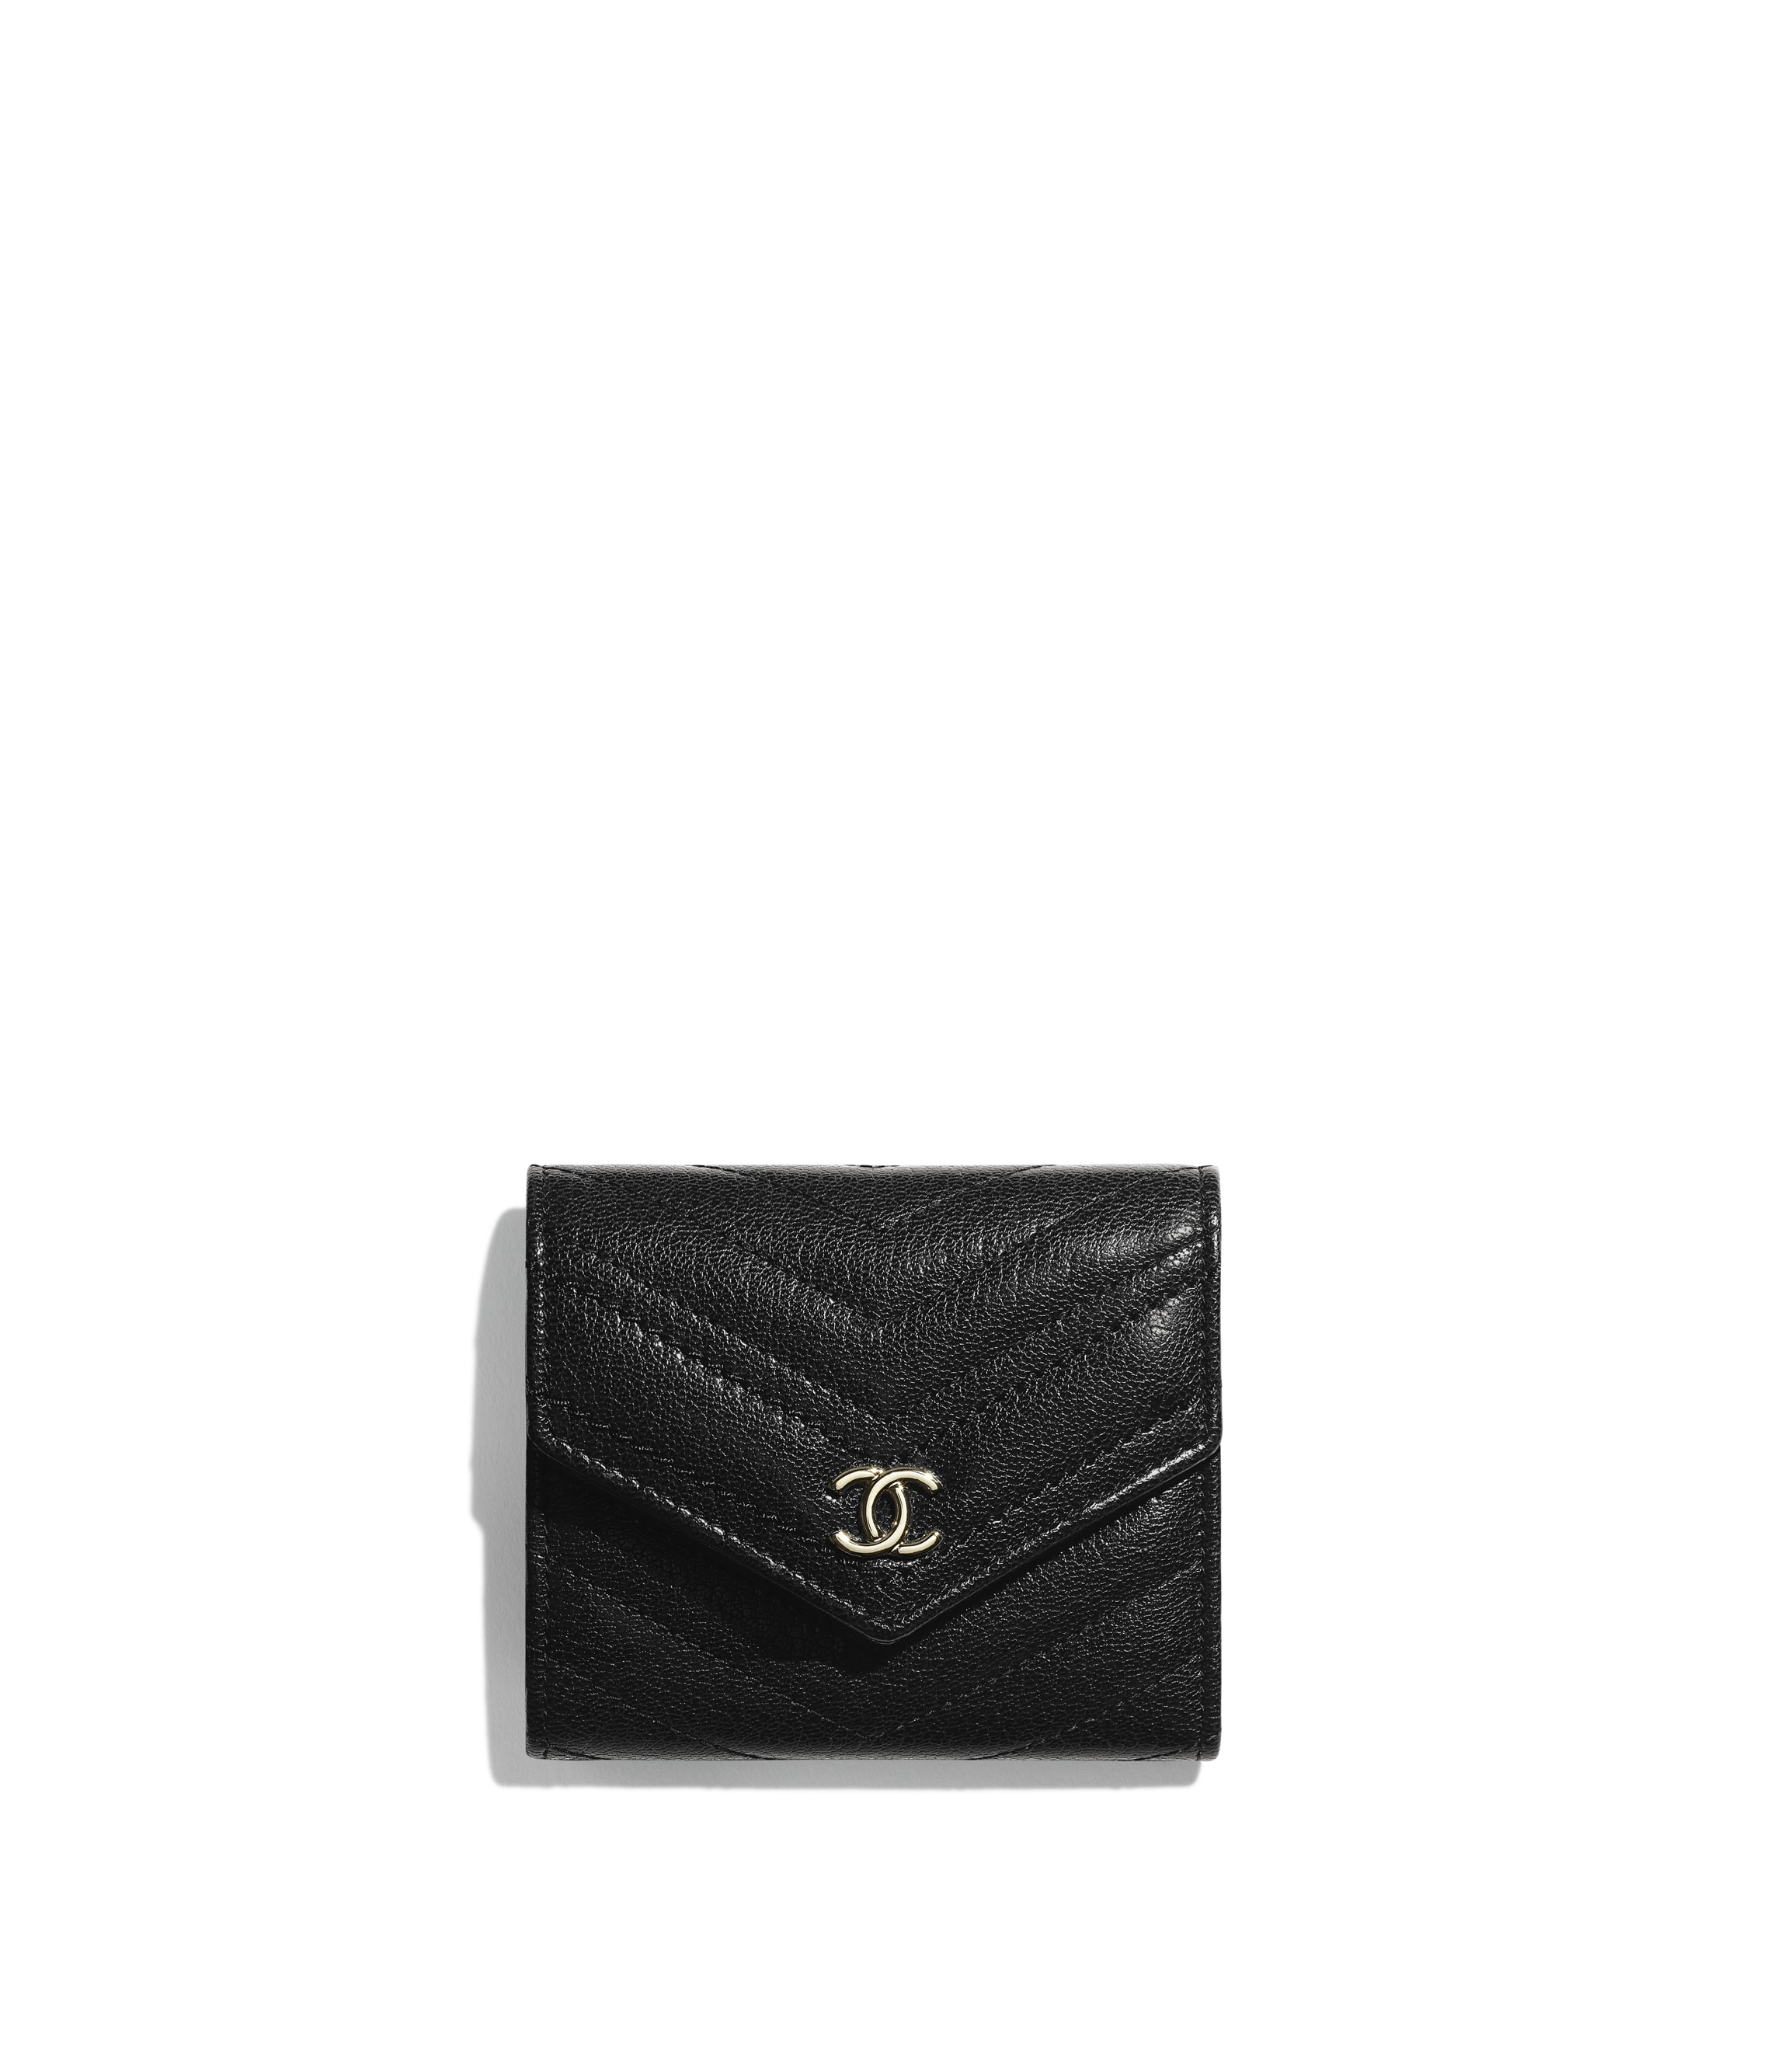 73044056fef7 Small leather goods - CHANEL